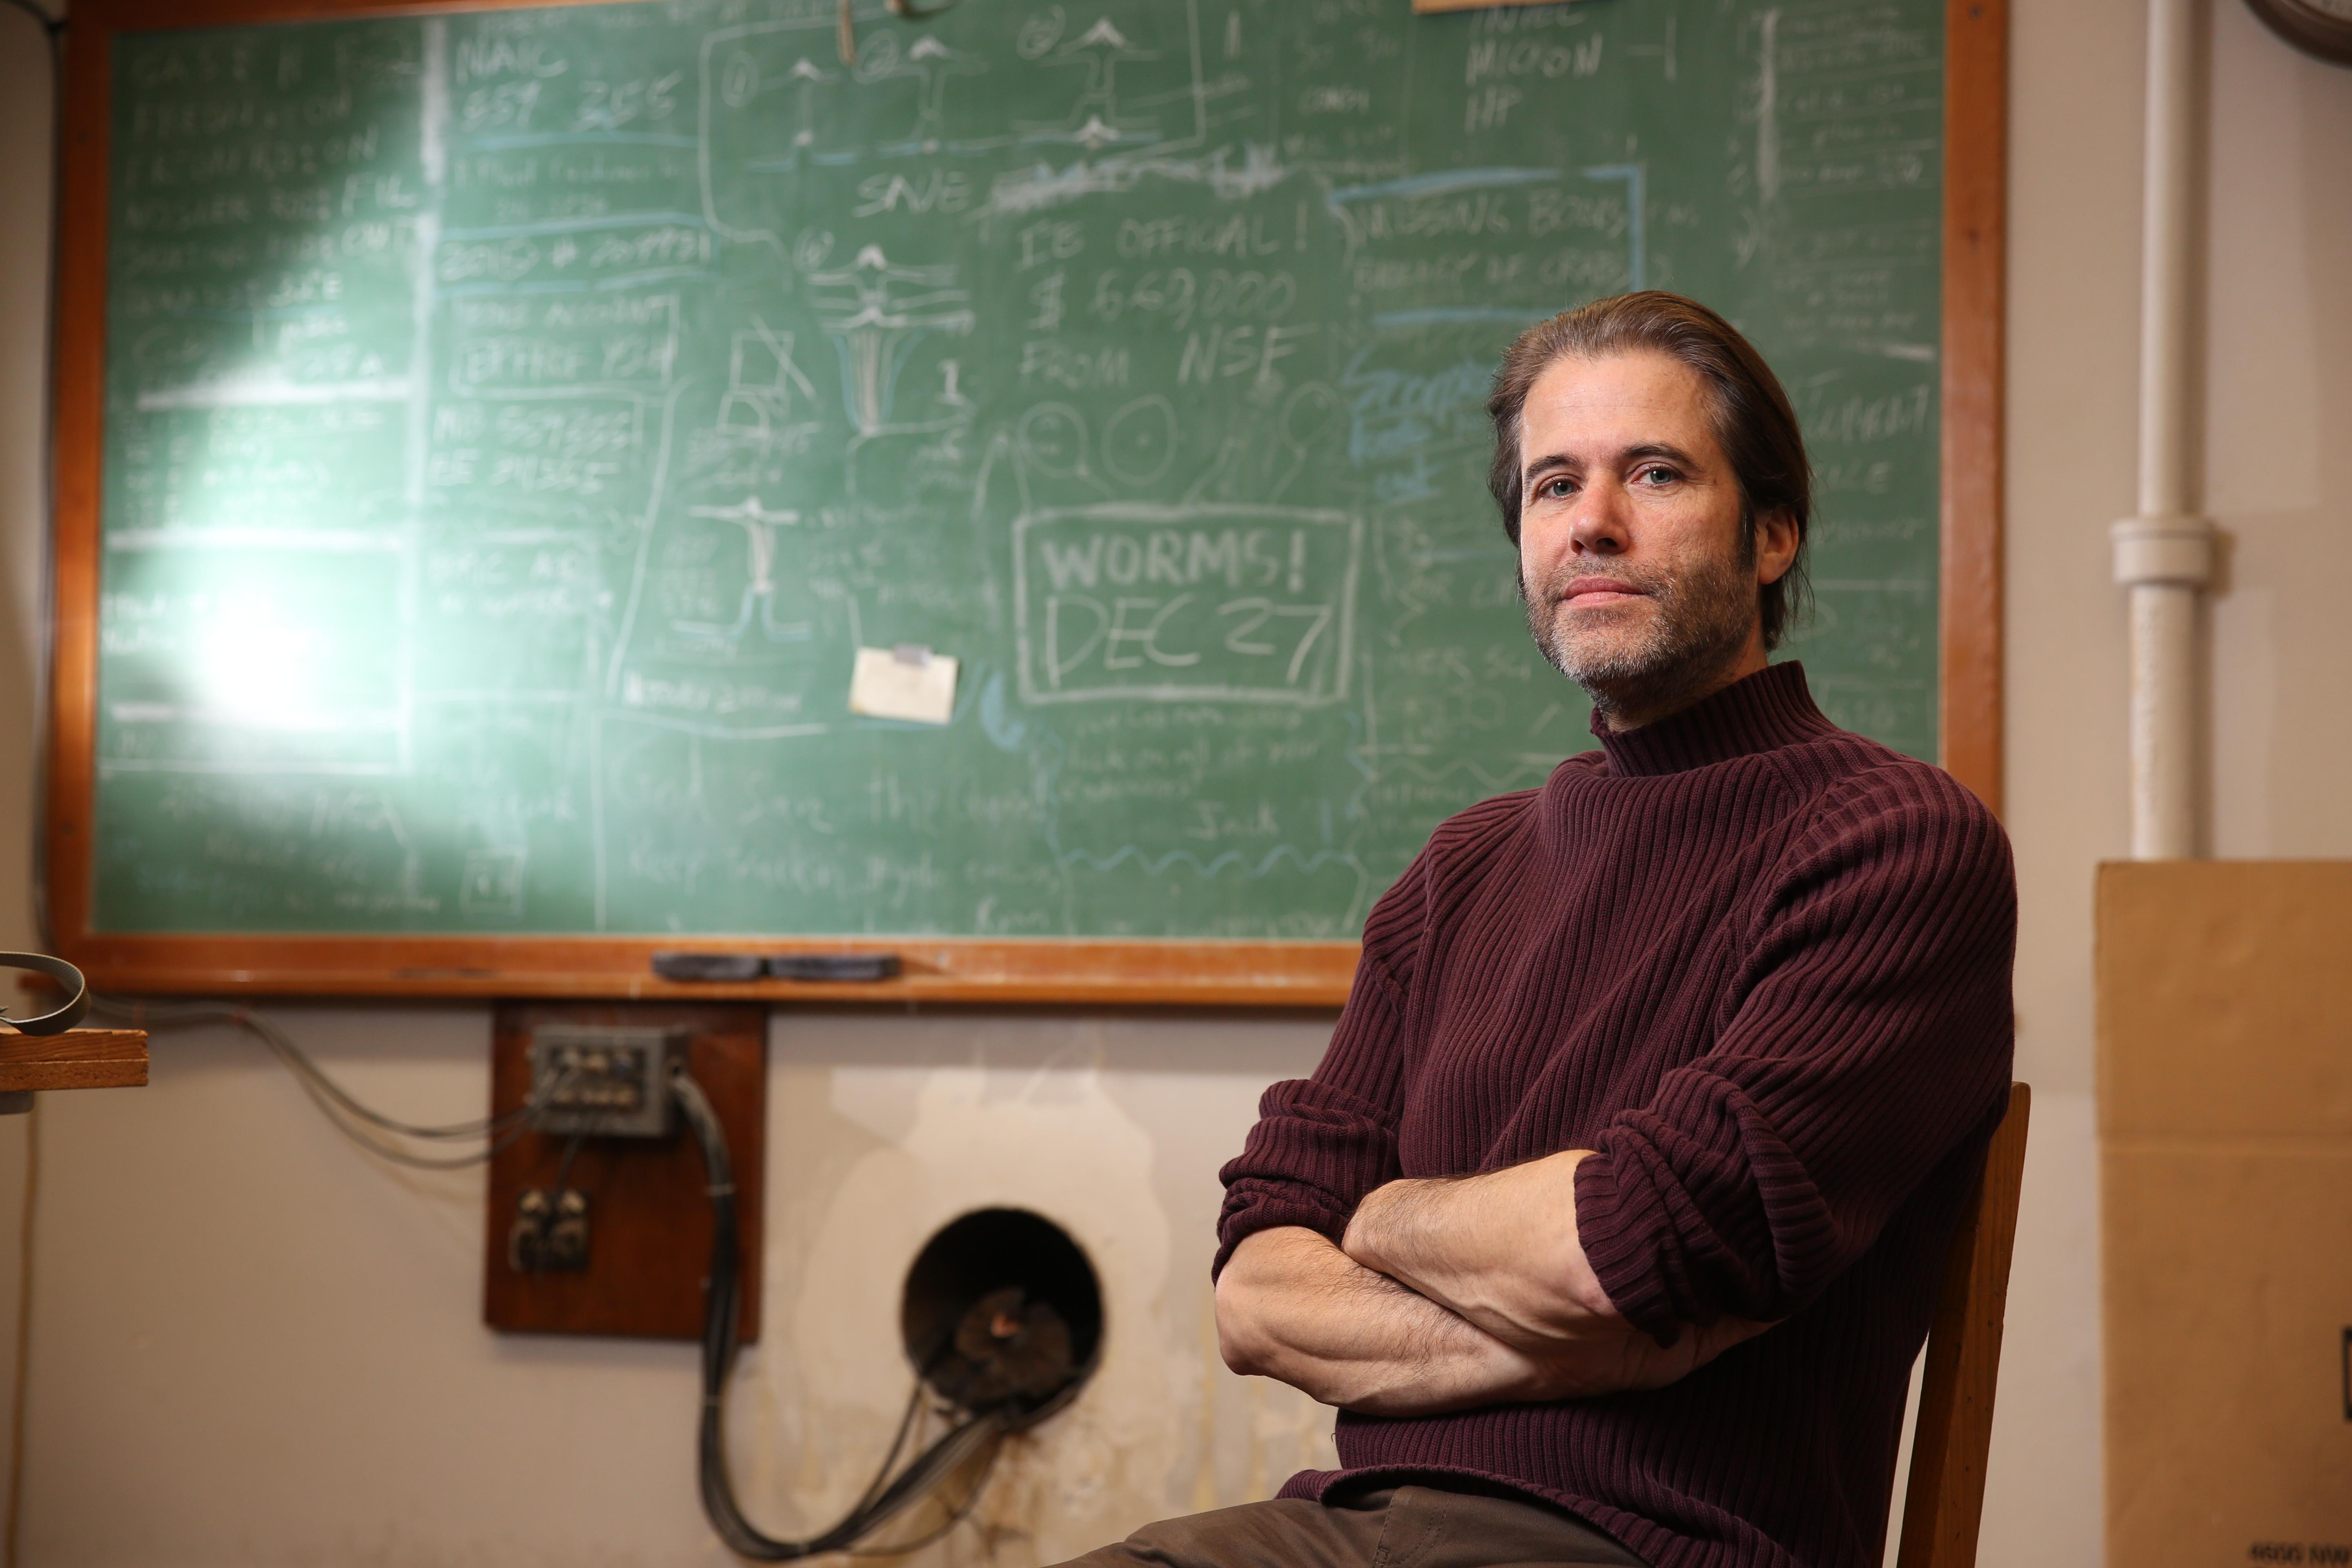 Robert Schofield poses for a picture inside his lab on Tuesday, Jan 26, 2016, on the campus of the University of Oregon in Eugene, Oregon.  (Photo courtesy University of Oregon)